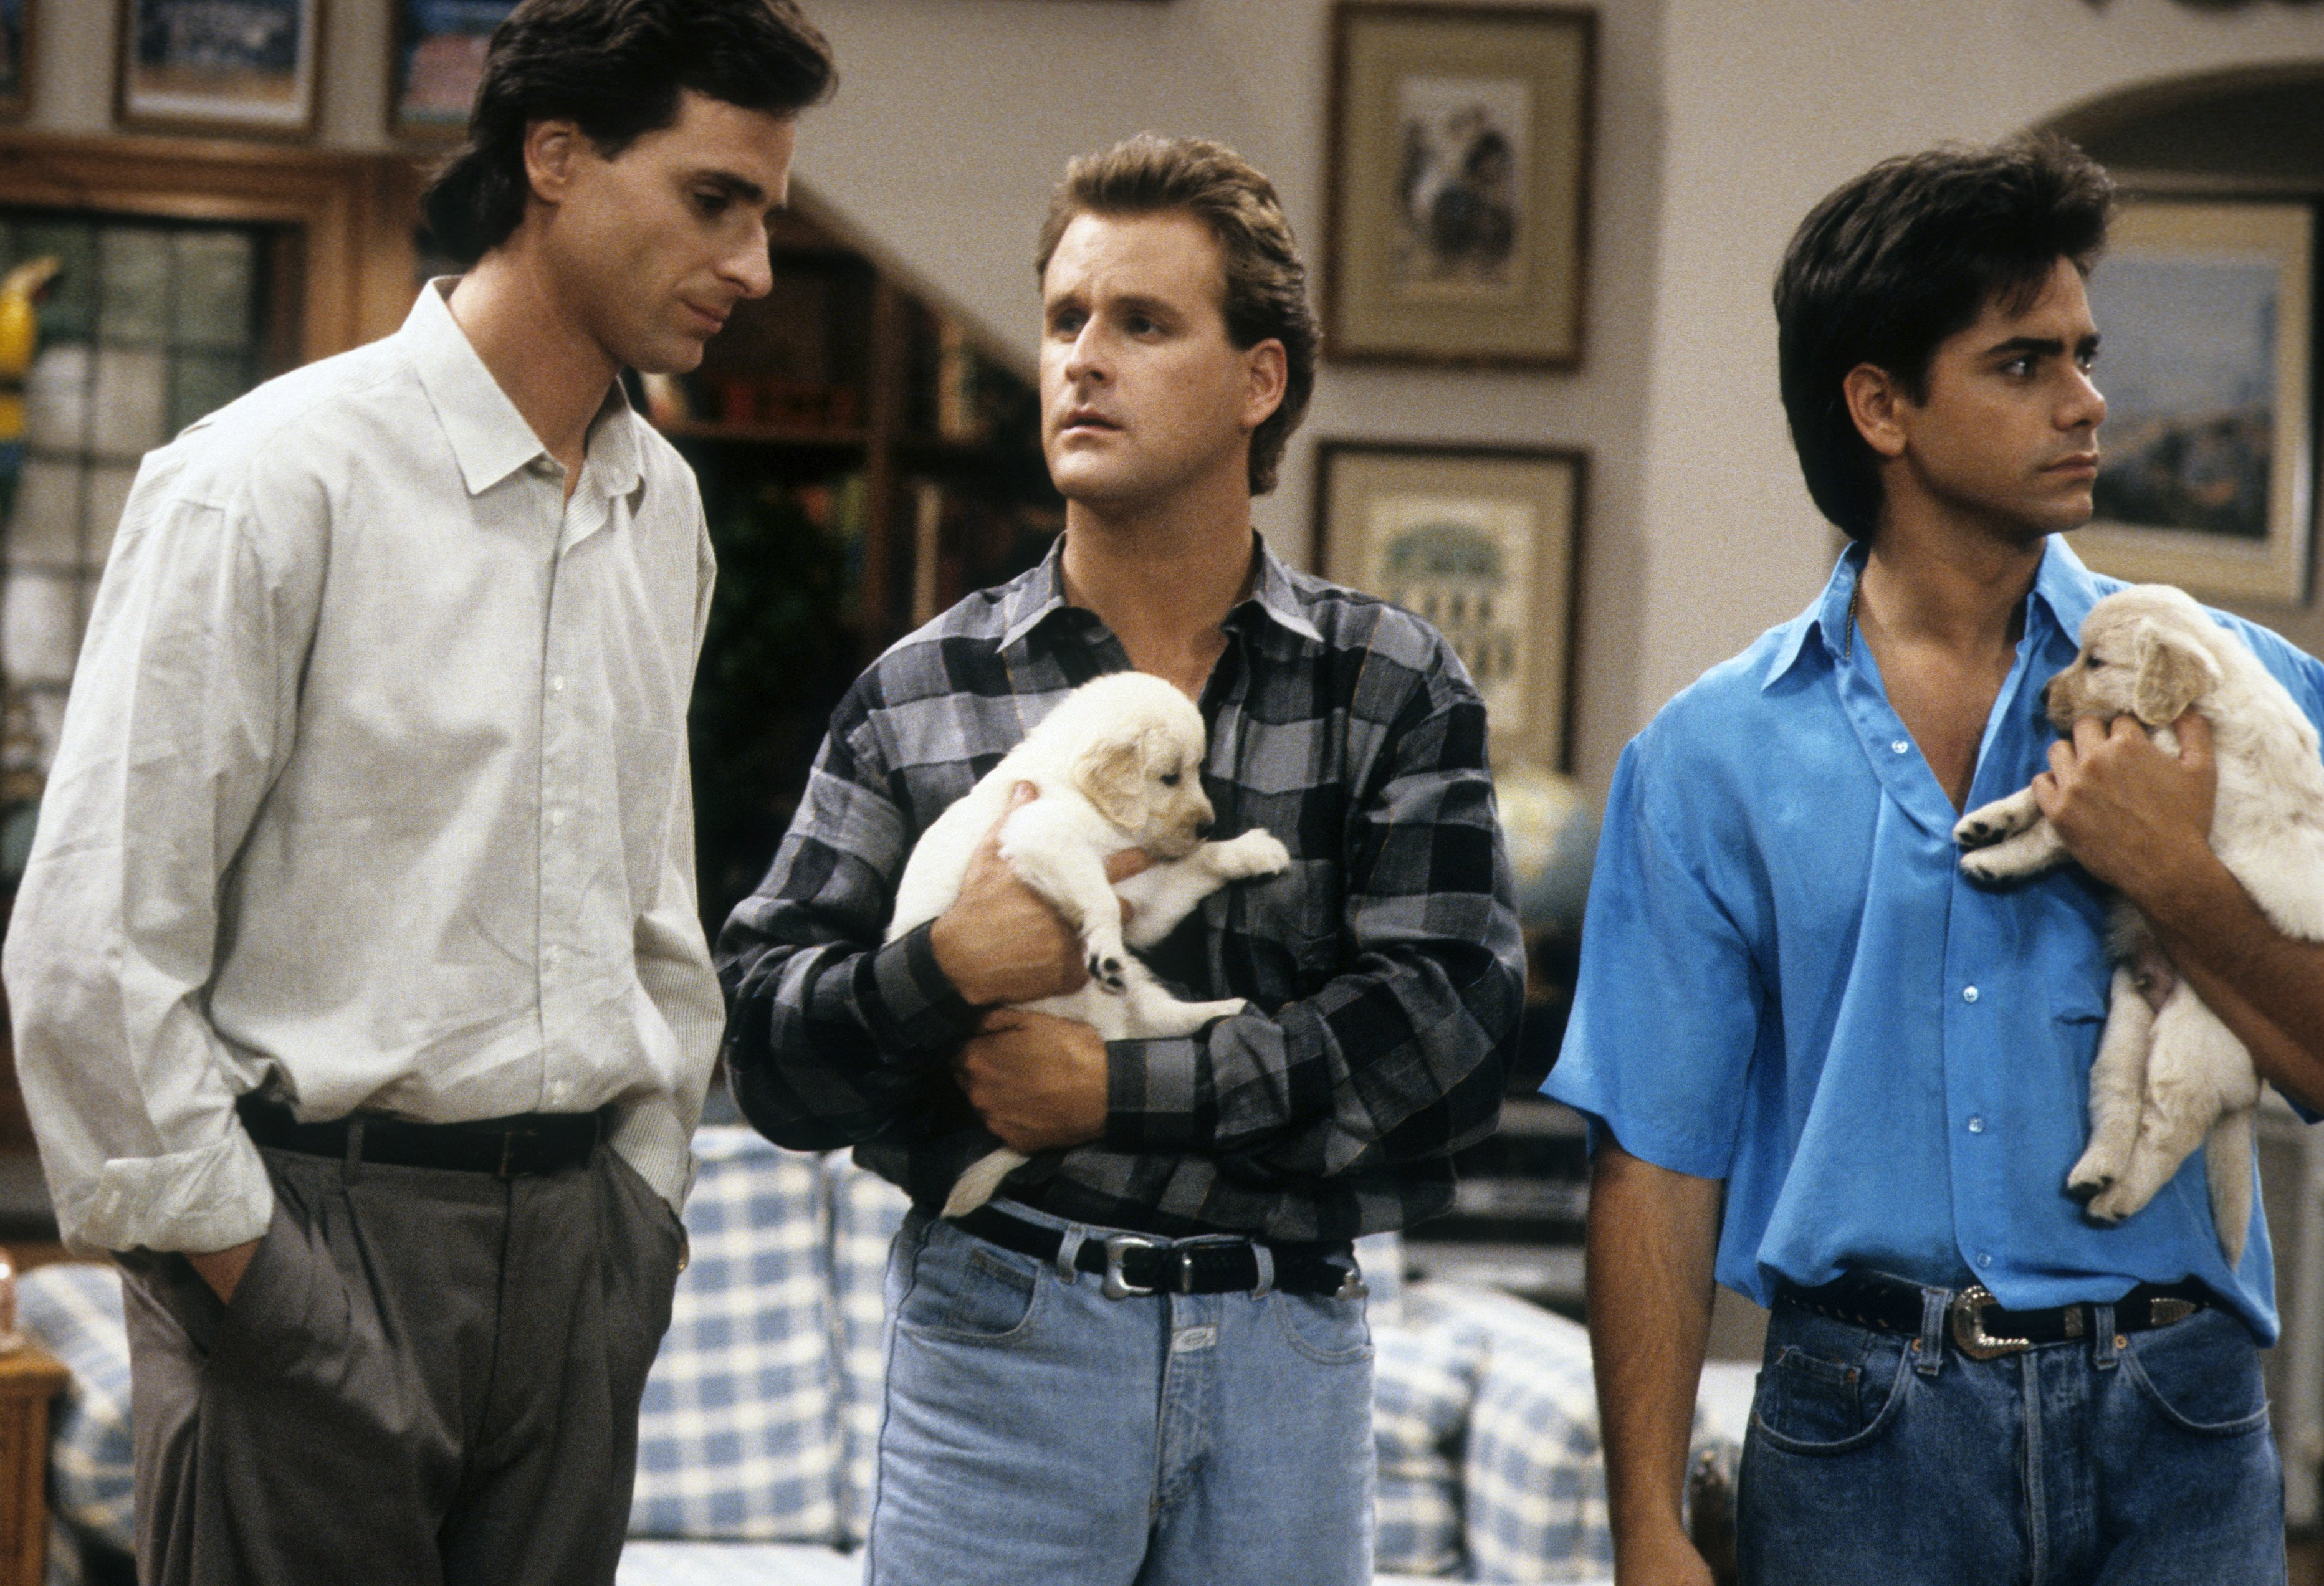 Bob Saget, Dave Coulier, and John Stamos in Full House.